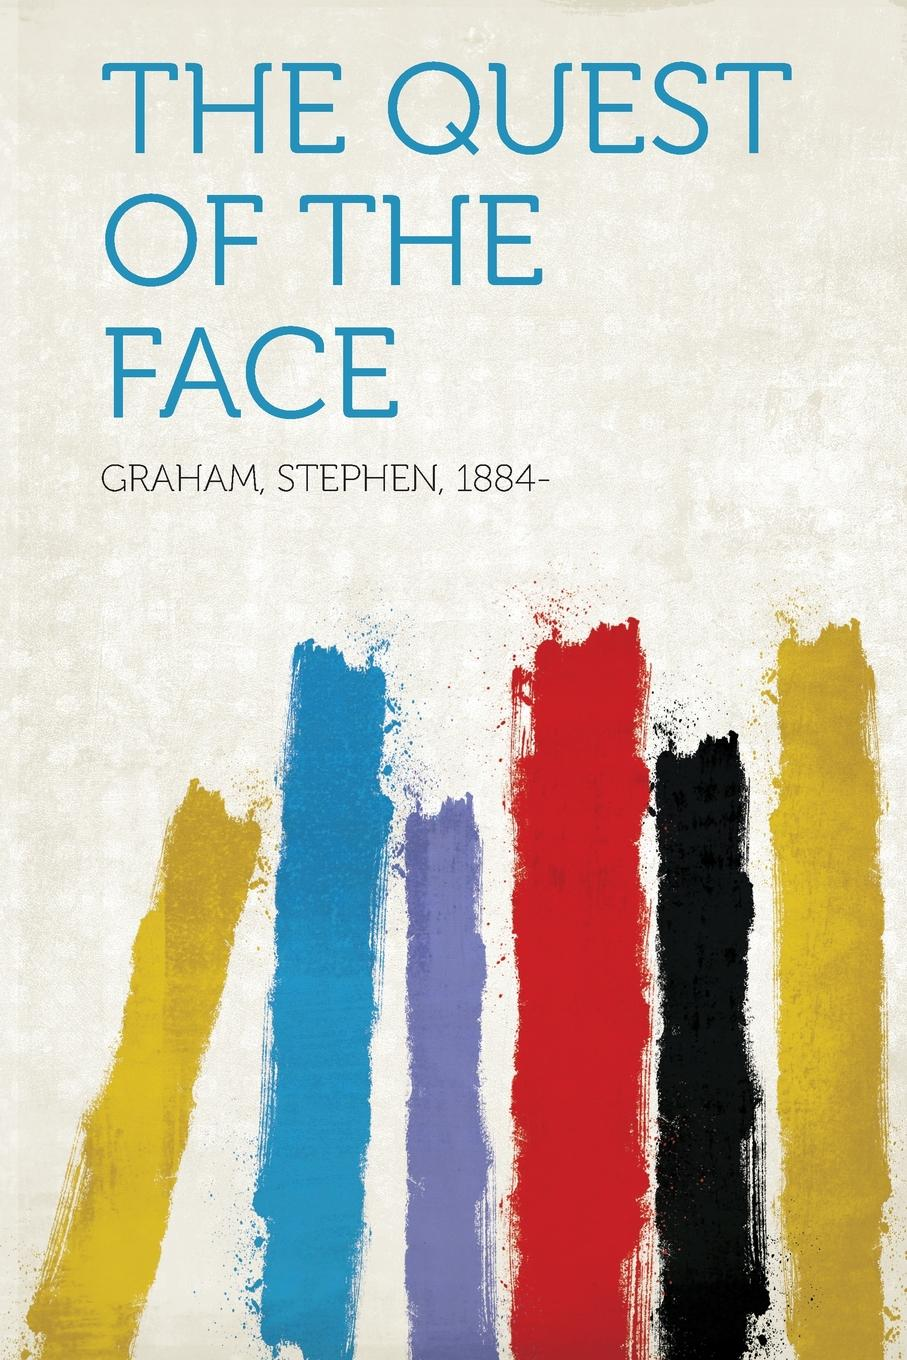 Graham Stephen 1884- The Quest of the Face